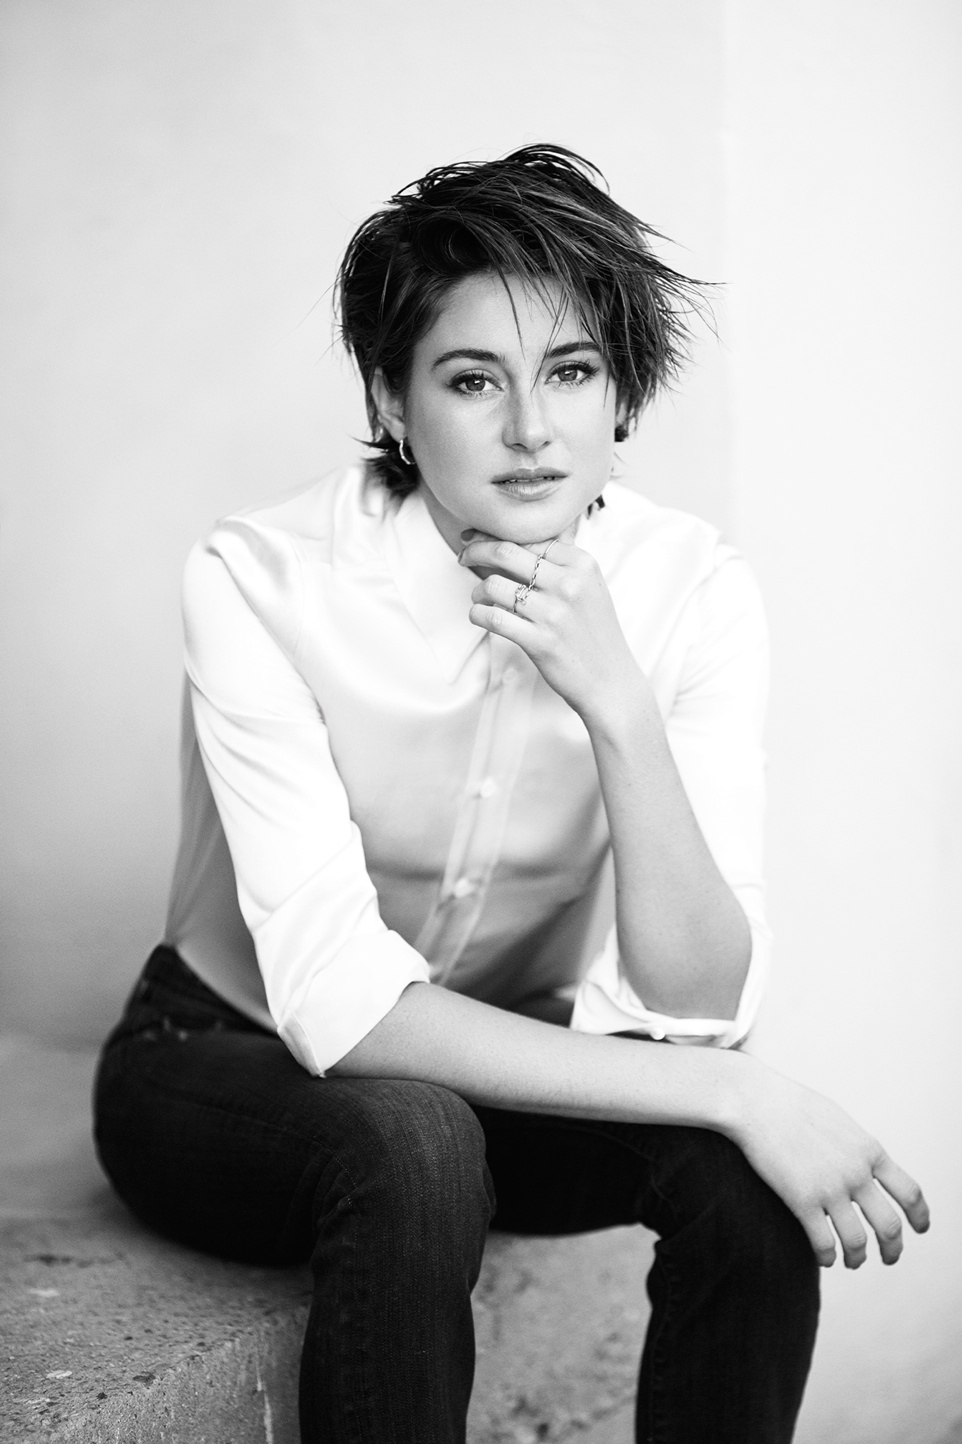 In her interview, Shailene talks about how she doesn't consider herself a feminist.